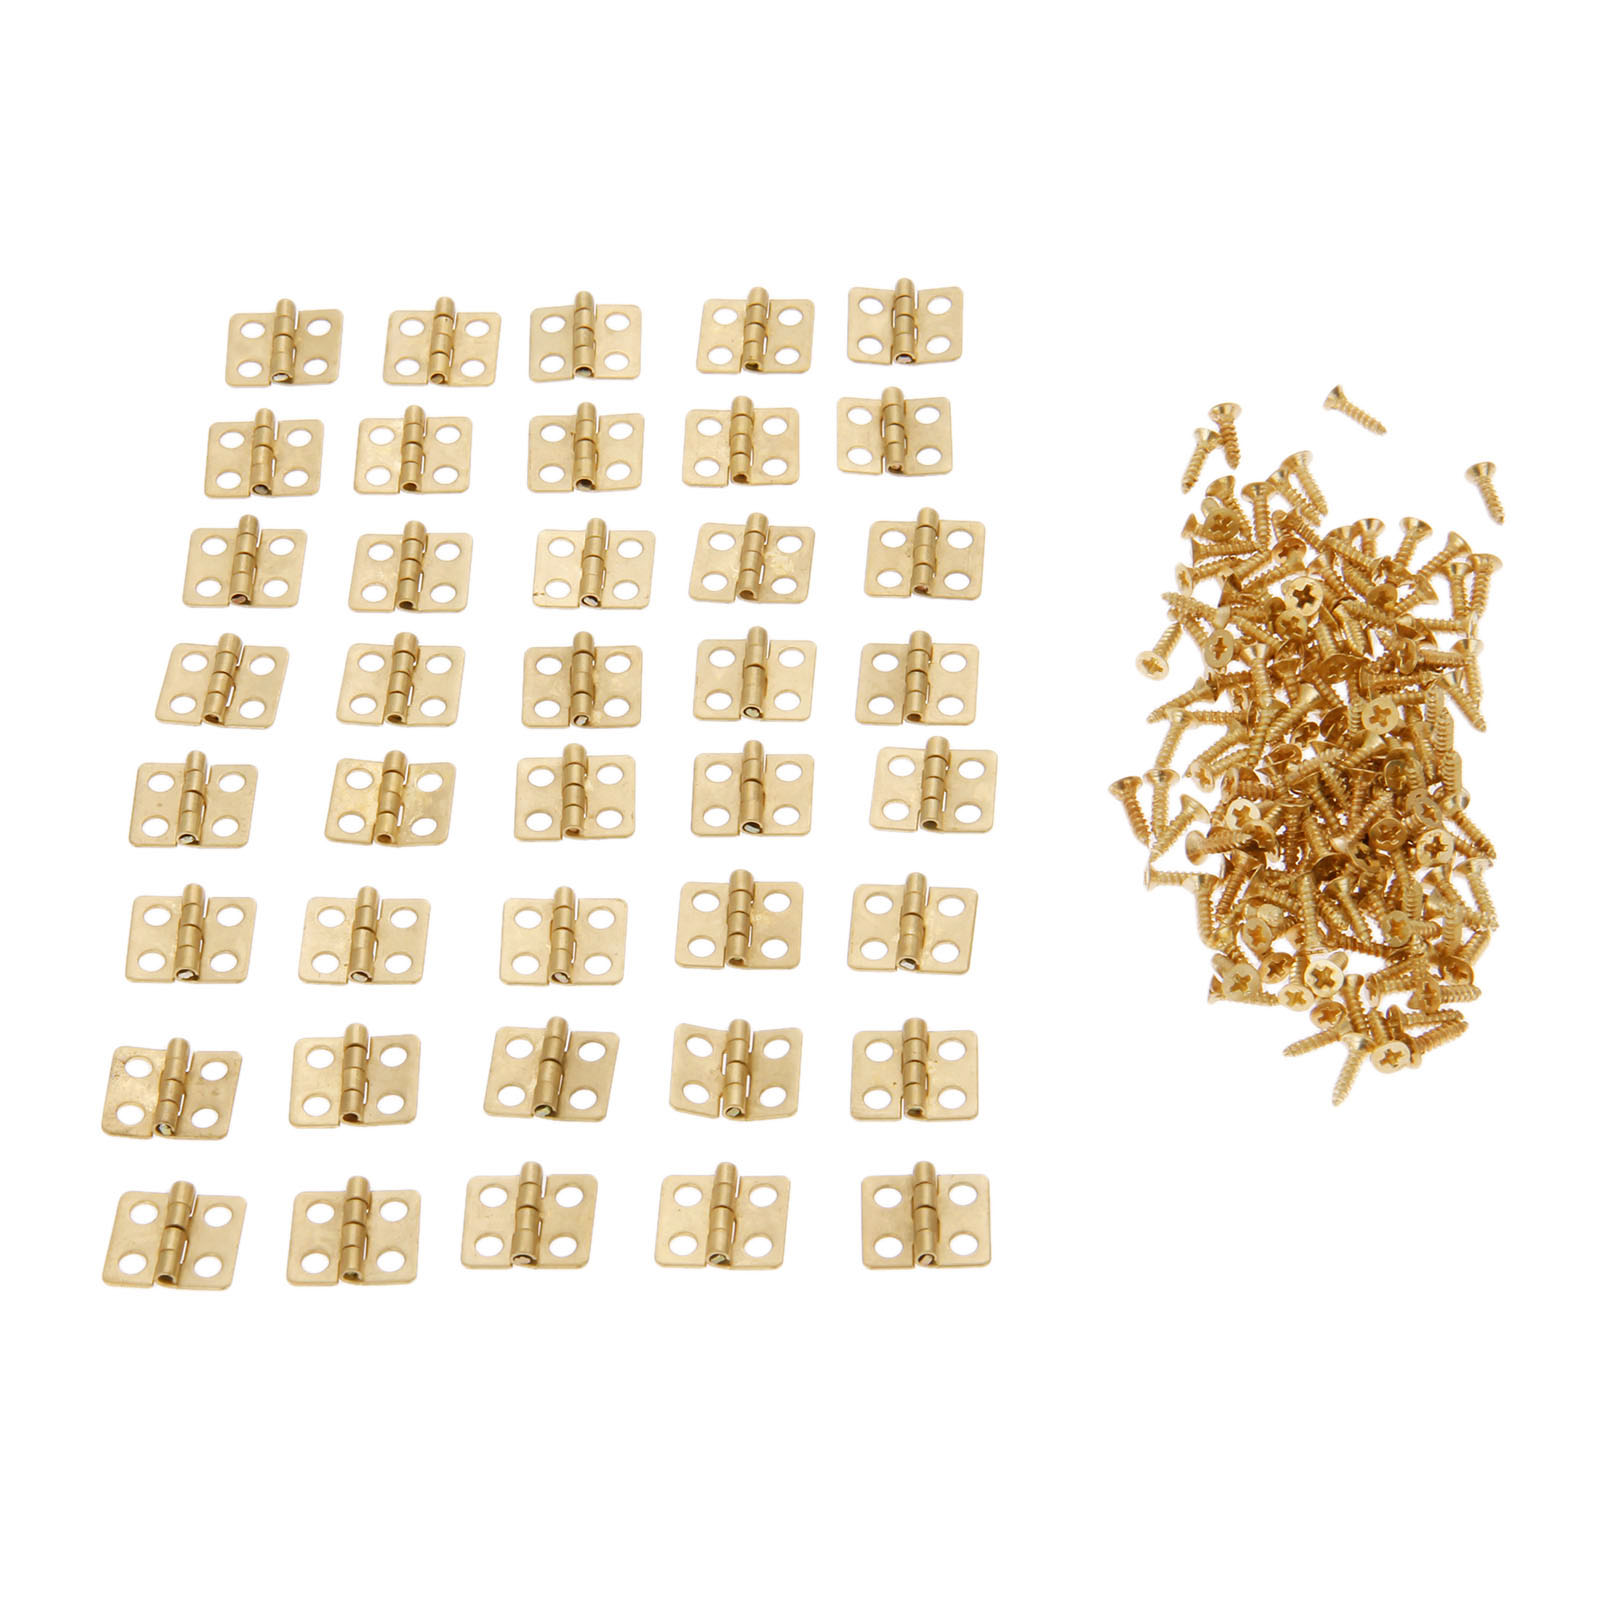 40Pcs Antique Mini Cabinet Drawer Door Furniture Butt Hinges 4 Holes Jewelry Boxes Decorative Hardware 13*12mm